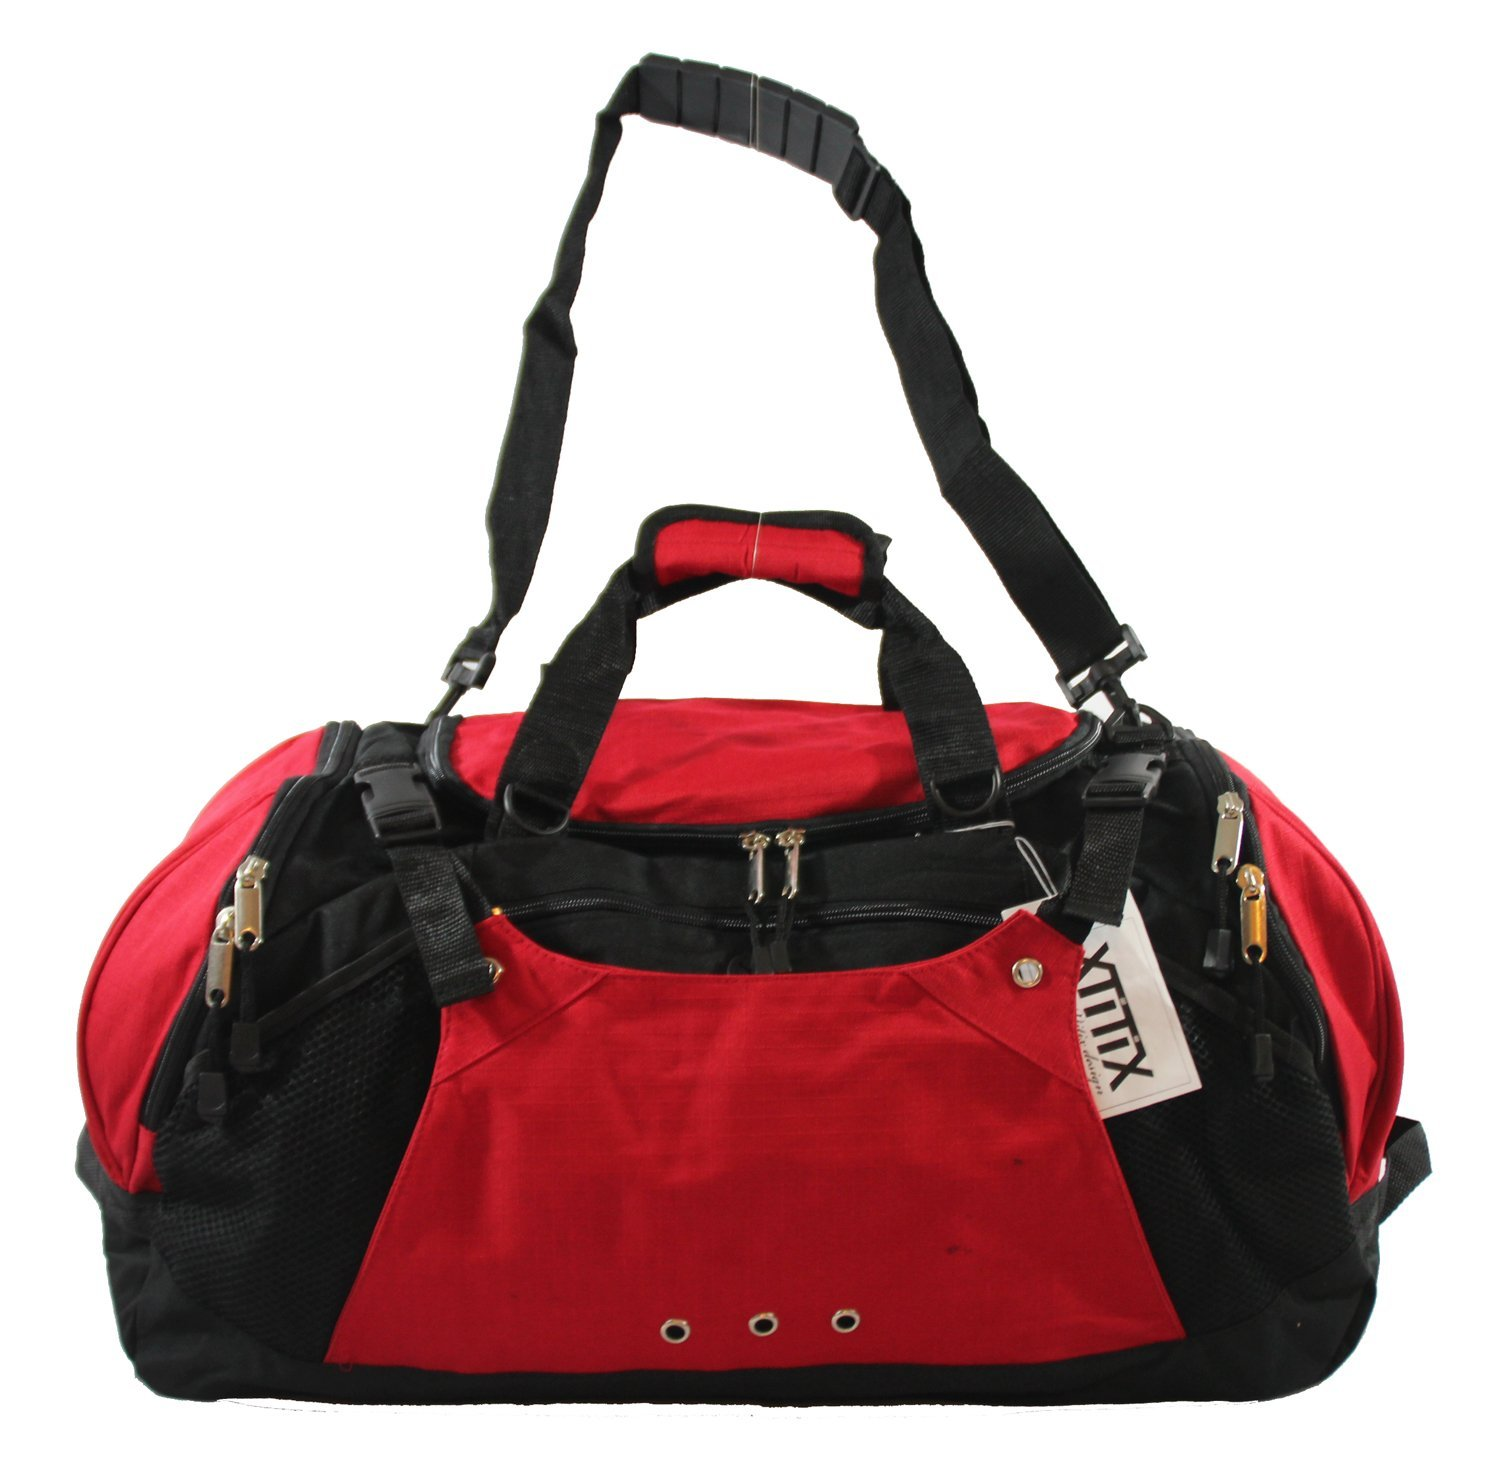 Xtitix Sport Gym Travel Deluxe Rip Stop Stylus Duffel Bag, 25'' L, Red by Xtitix (Image #1)